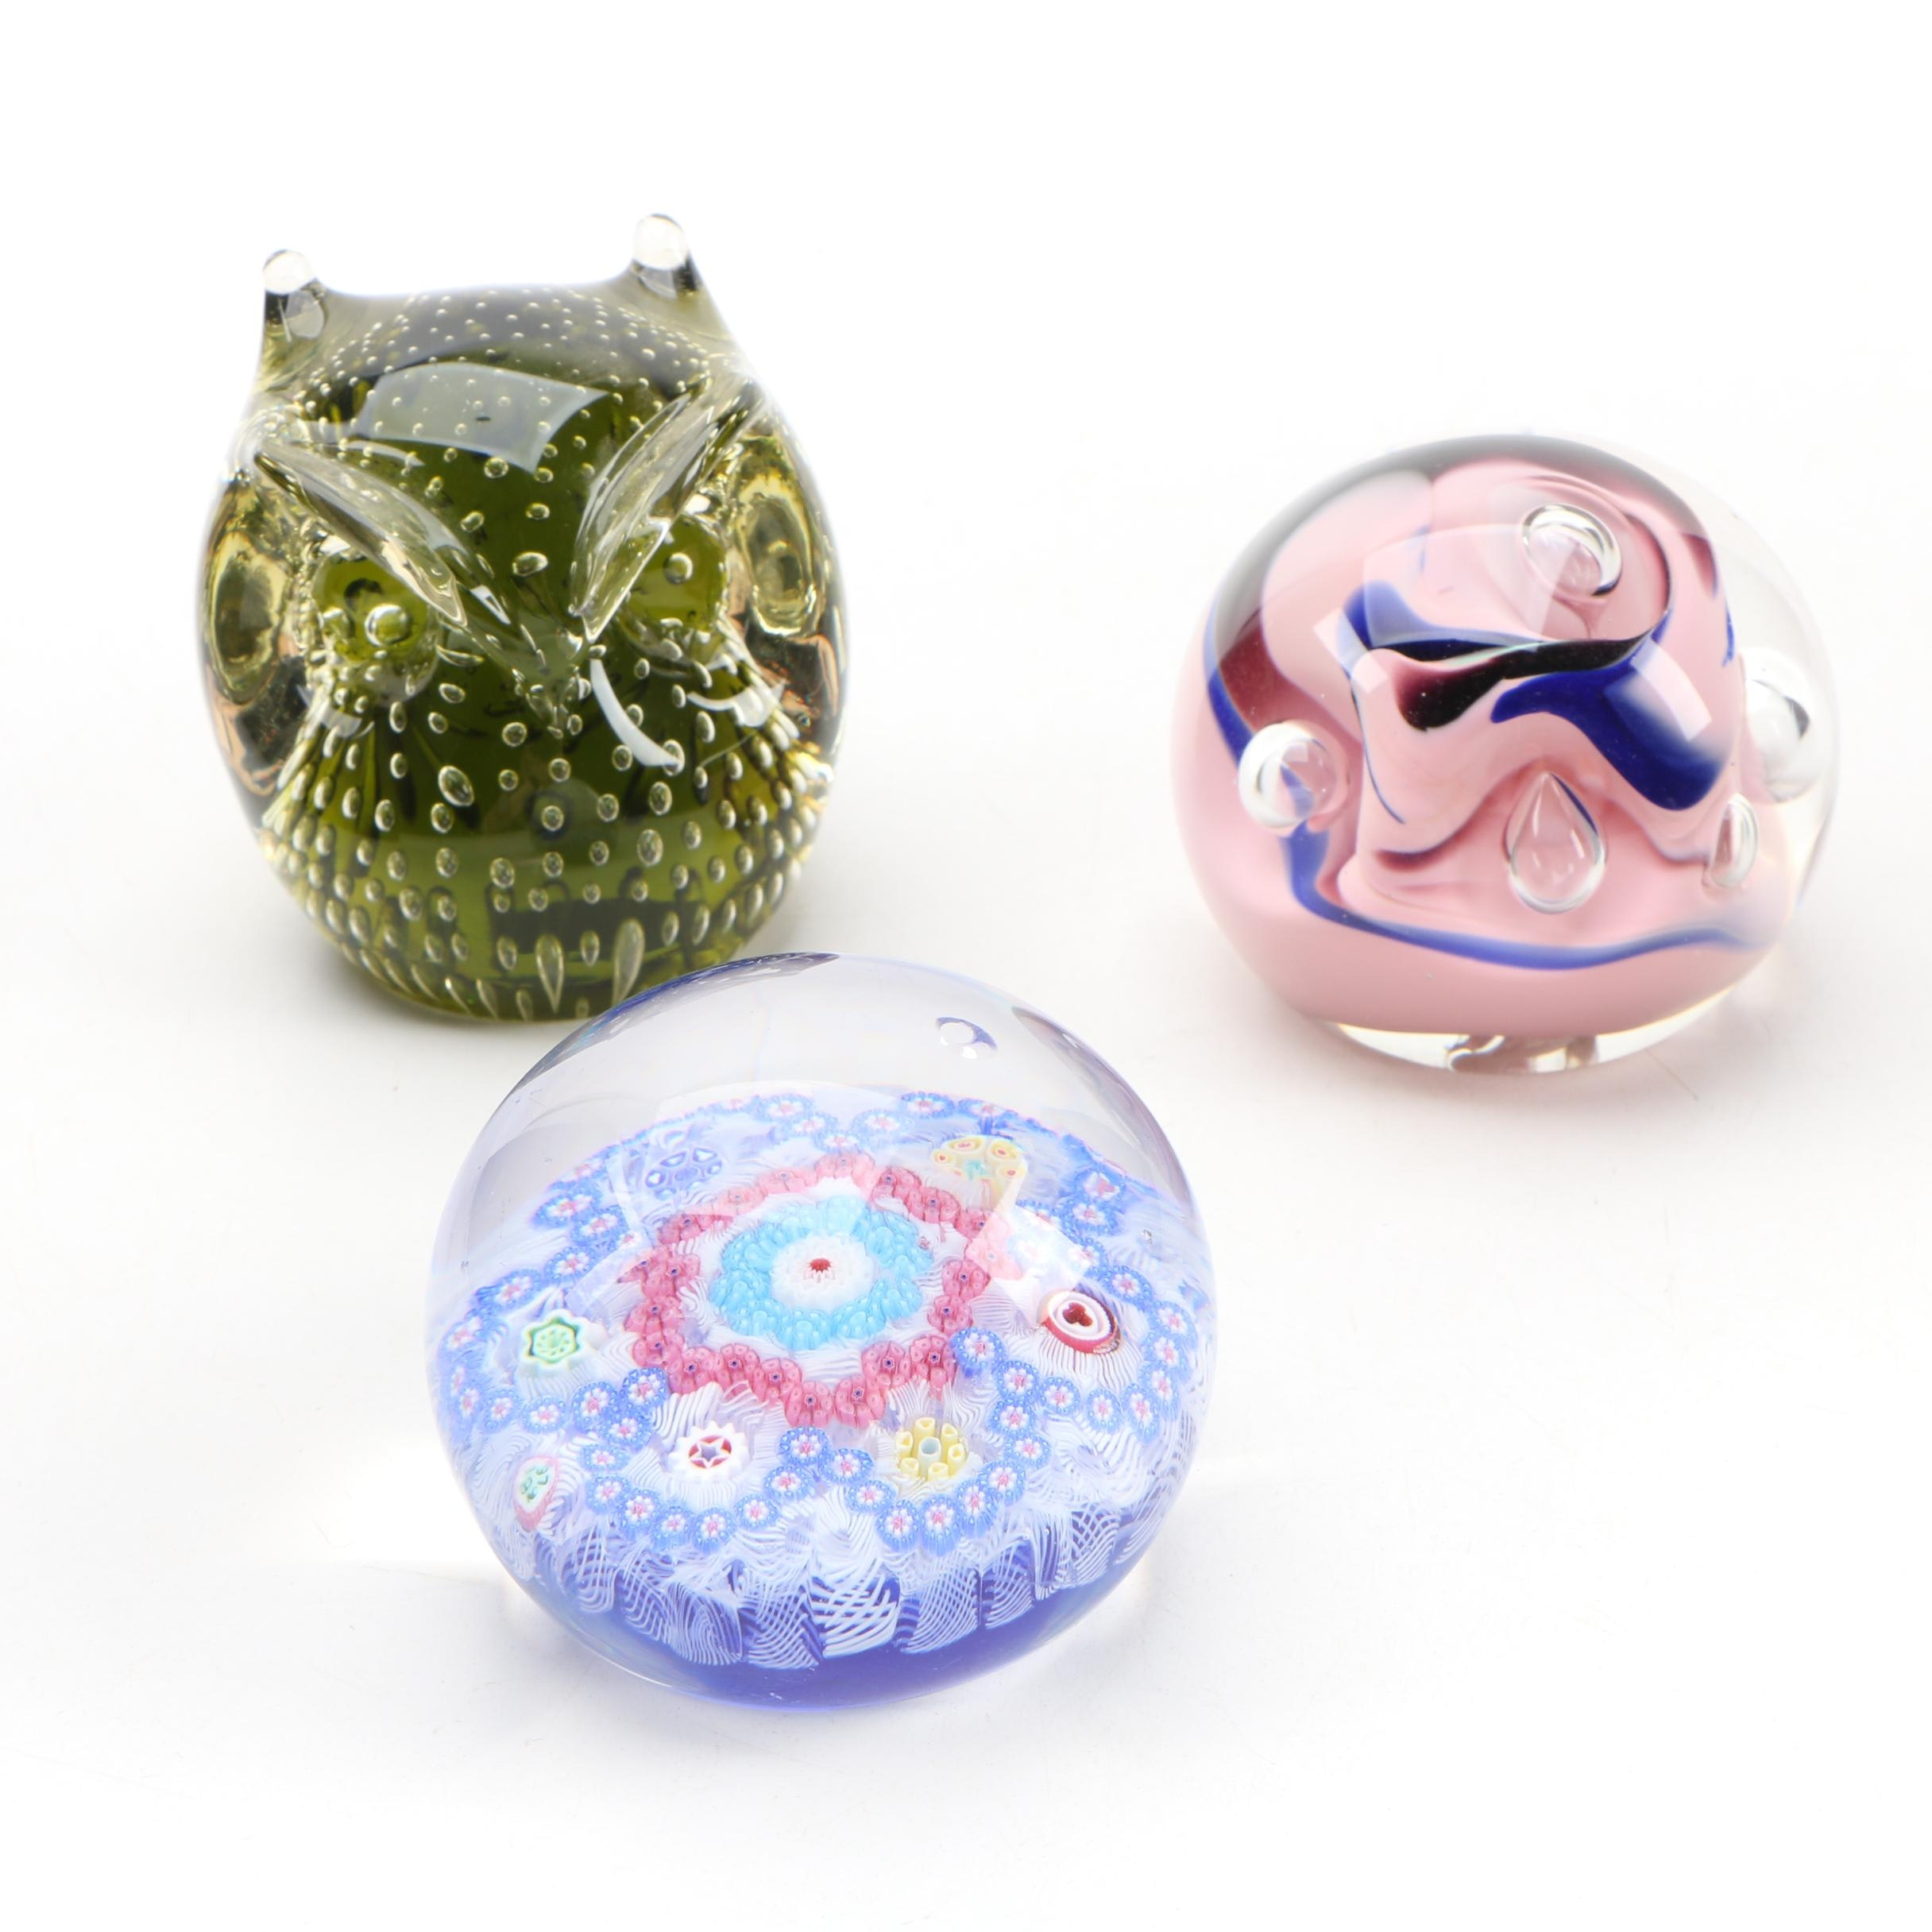 Baccarat Millefiori Art Glass Paperweight and other Art Glass Paperweights